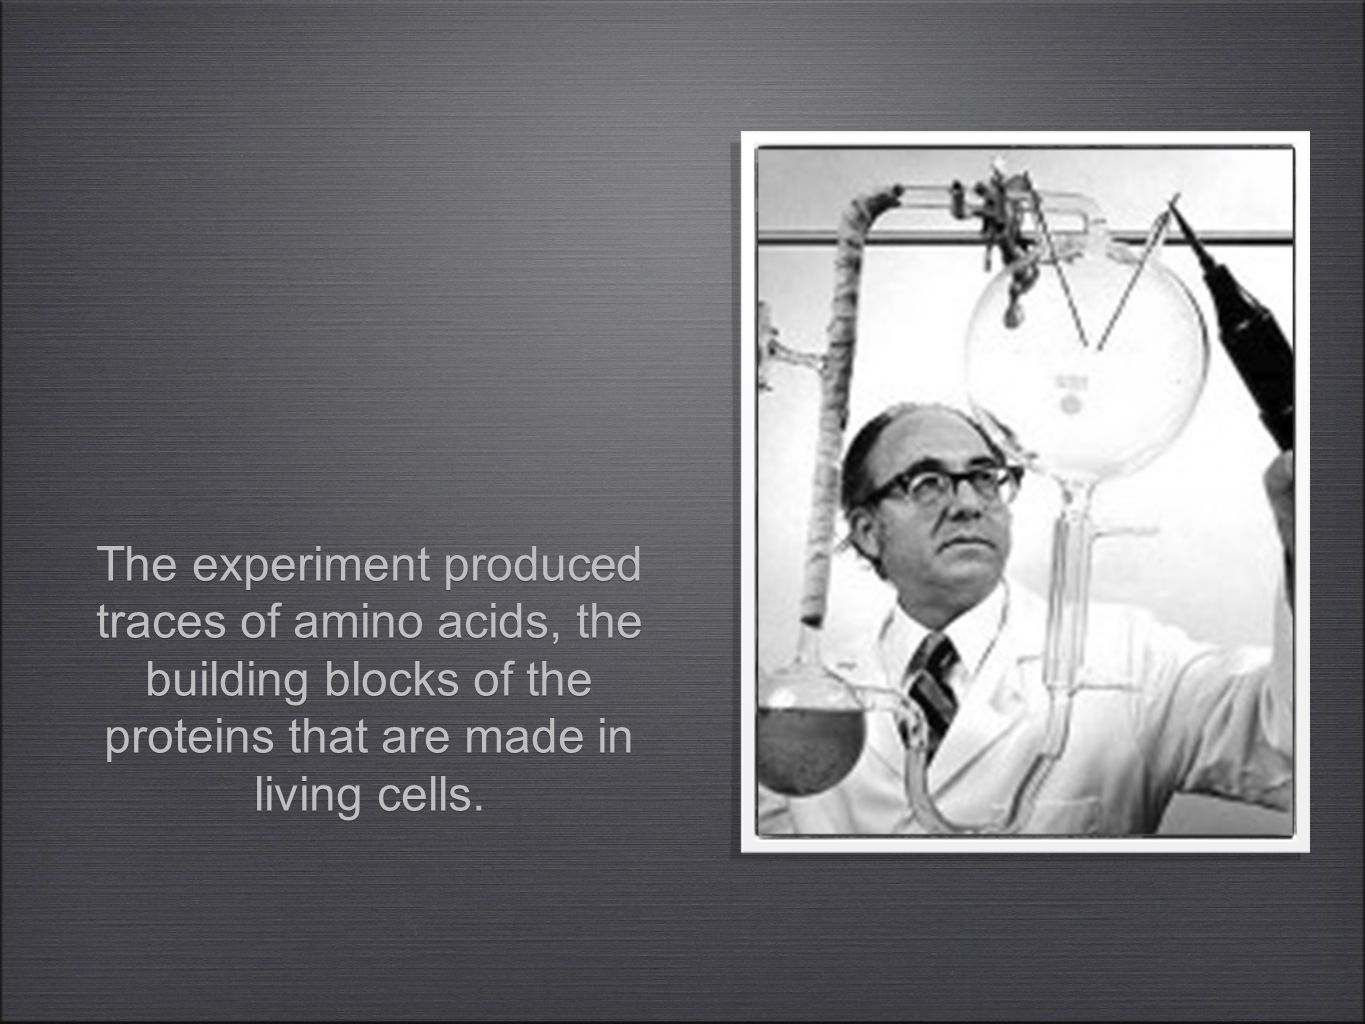 The experiment produced traces of amino acids, the building blocks of the proteins that are made in living cells.